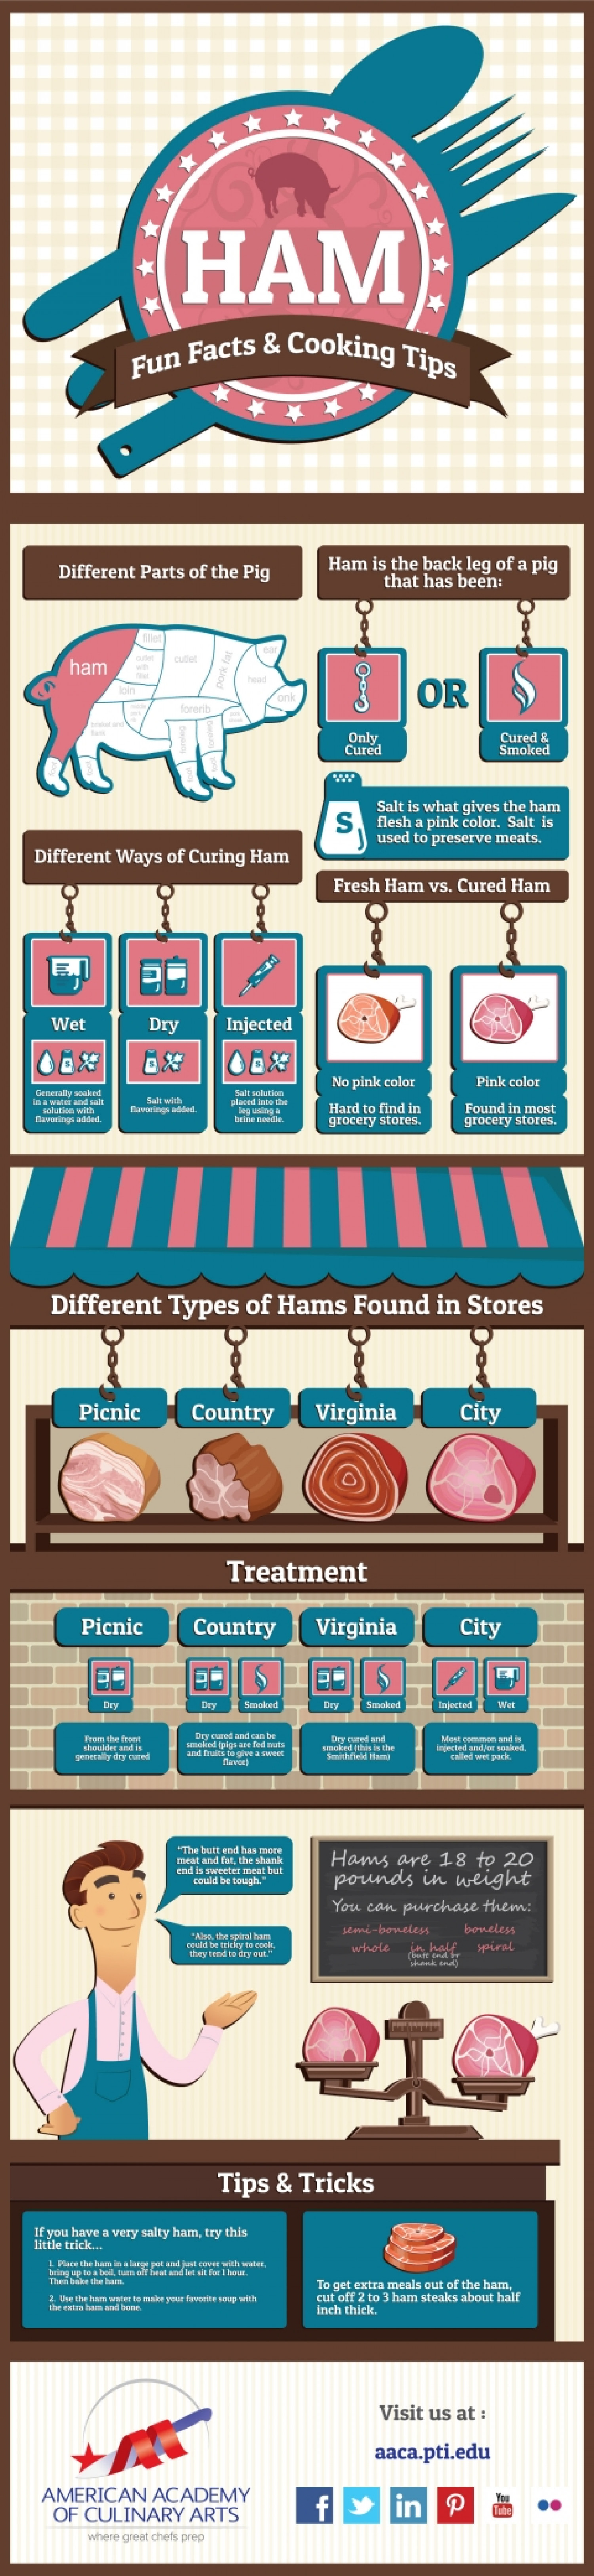 Ham Cooking Recipes & Tips from the American Academy of Culinary Arts Infographic